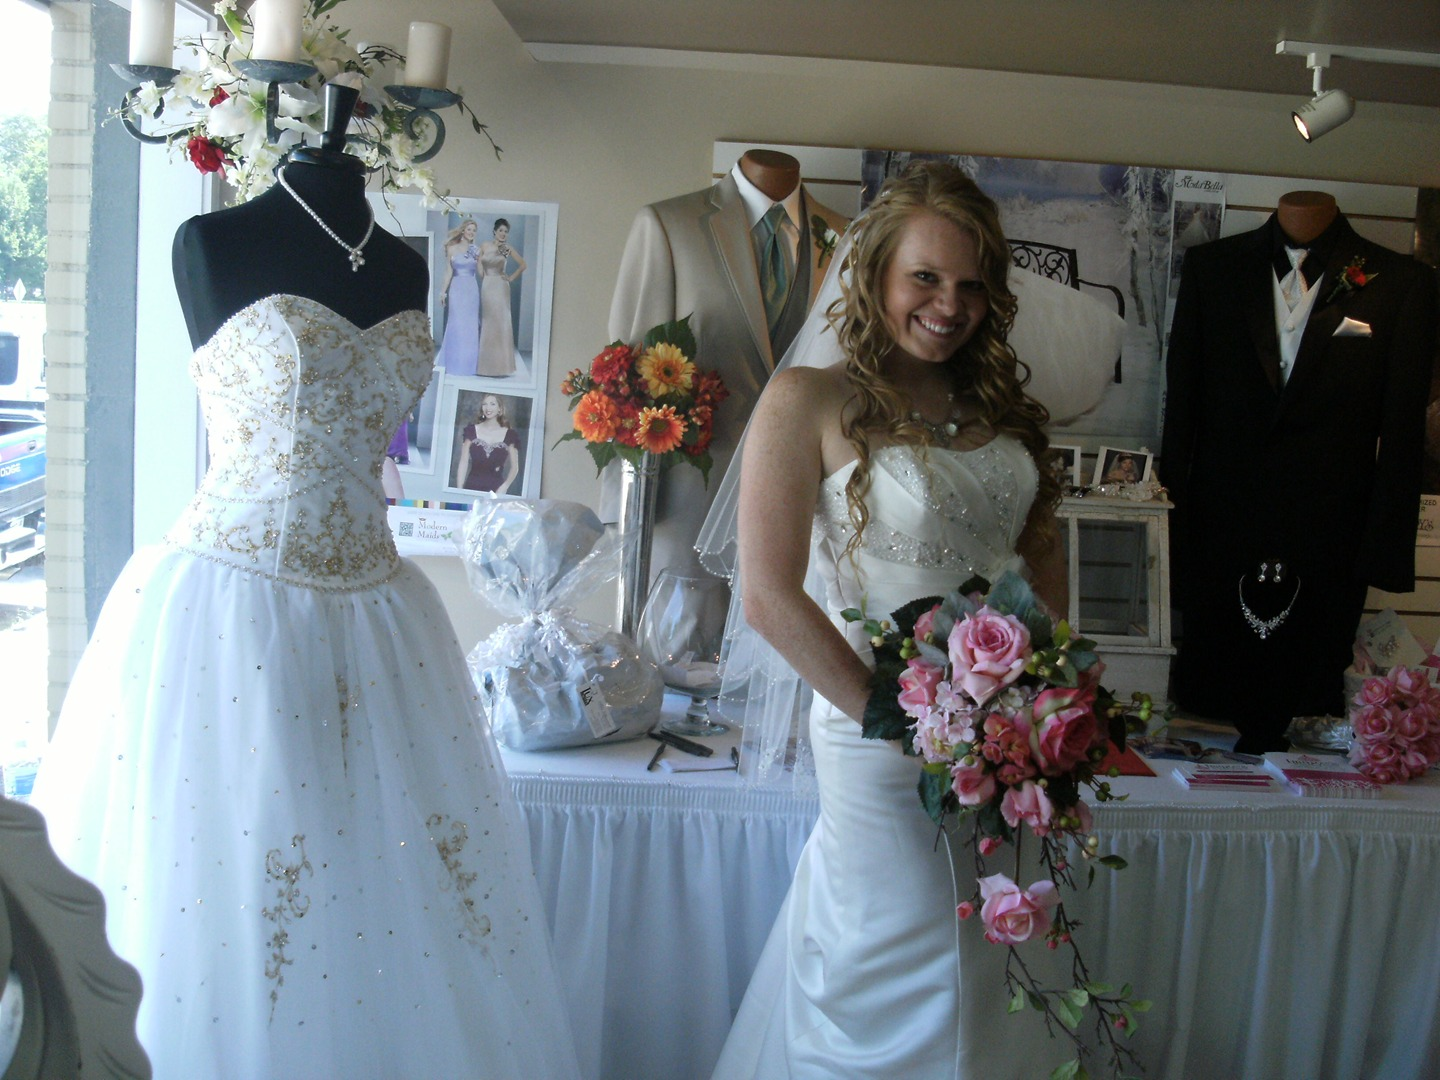 About Bridal Gowns Wedding Dresses Birmingham - Alabama